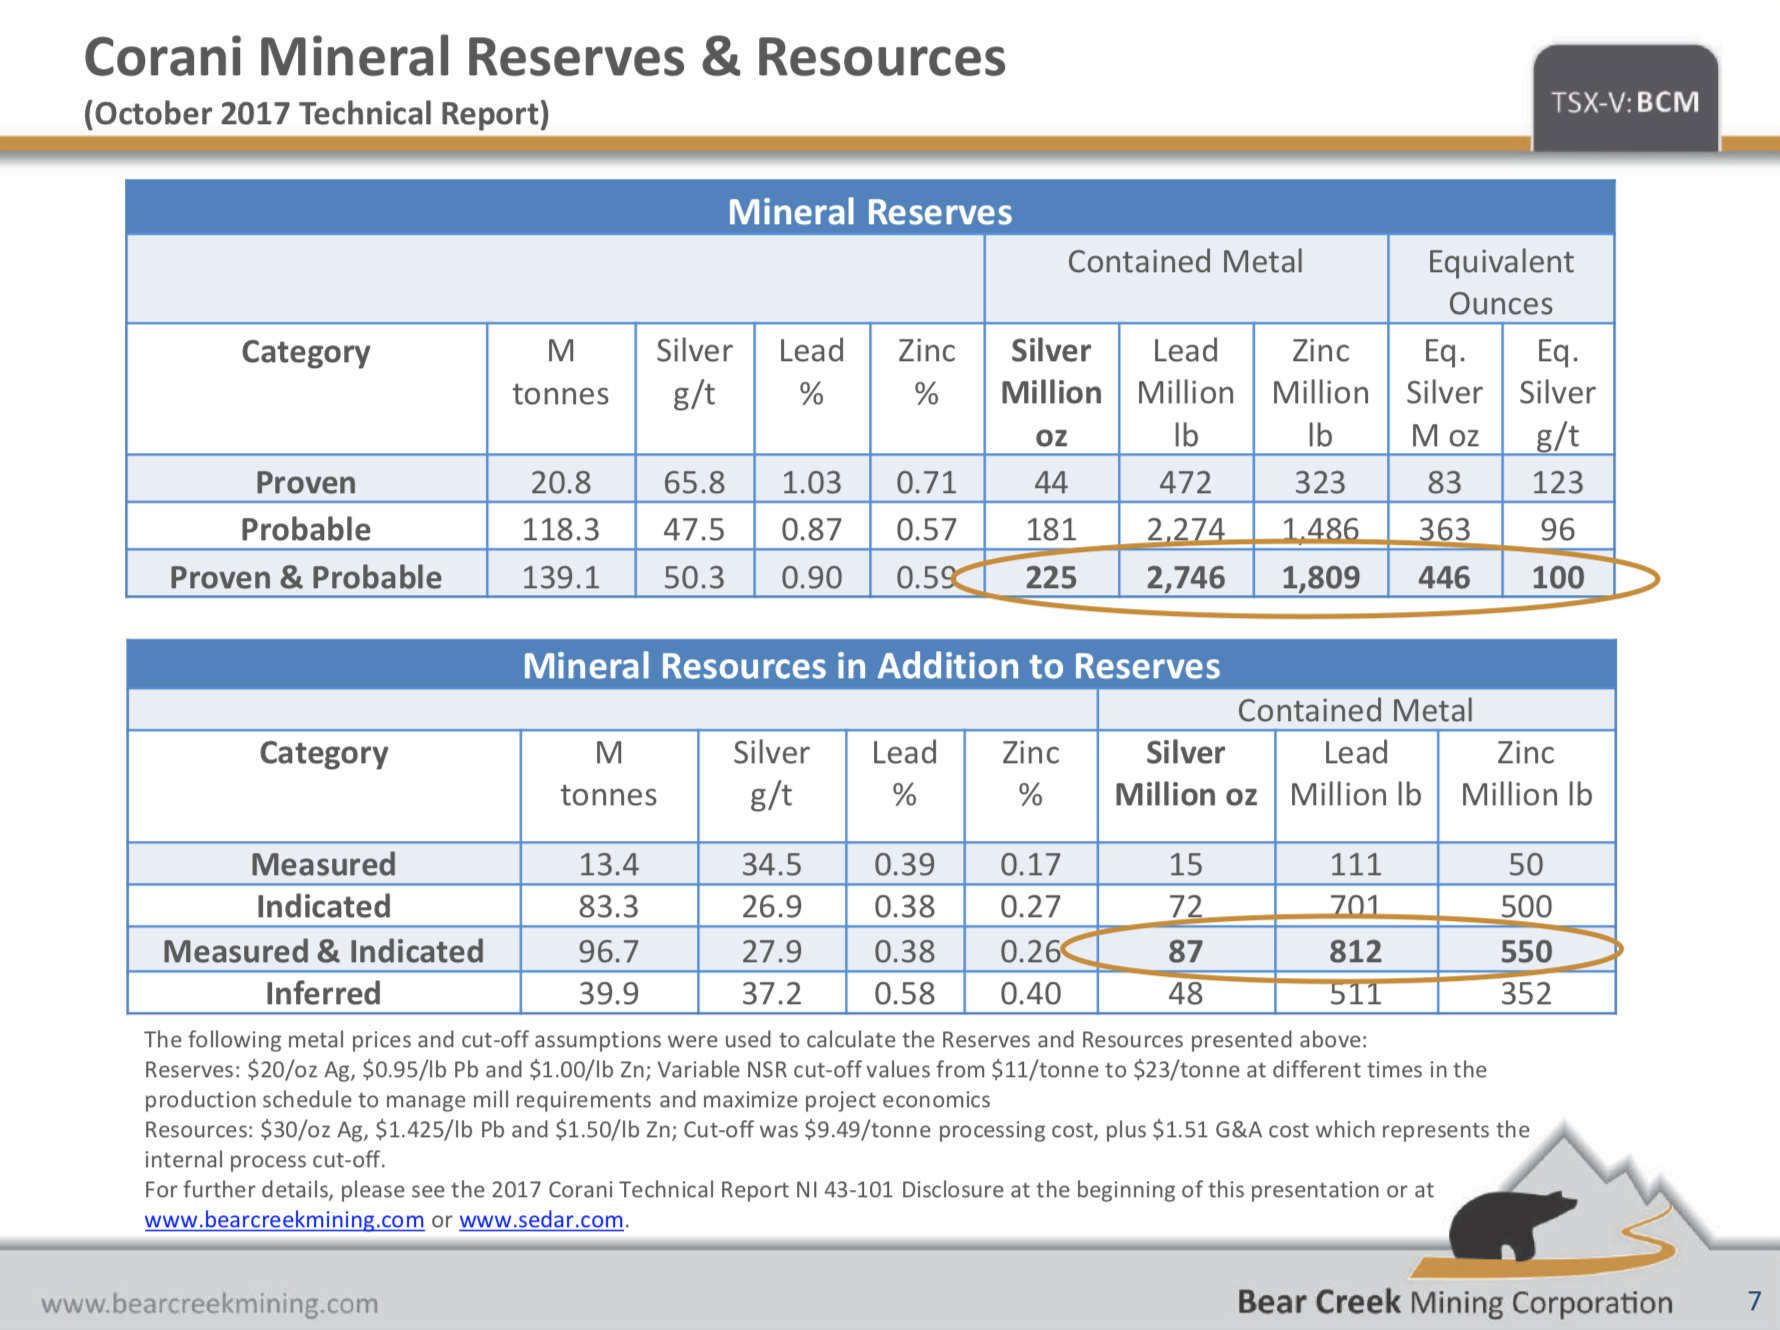 Bear Creek Mining: Greatly Outperforming The Sector To Begin The New Year